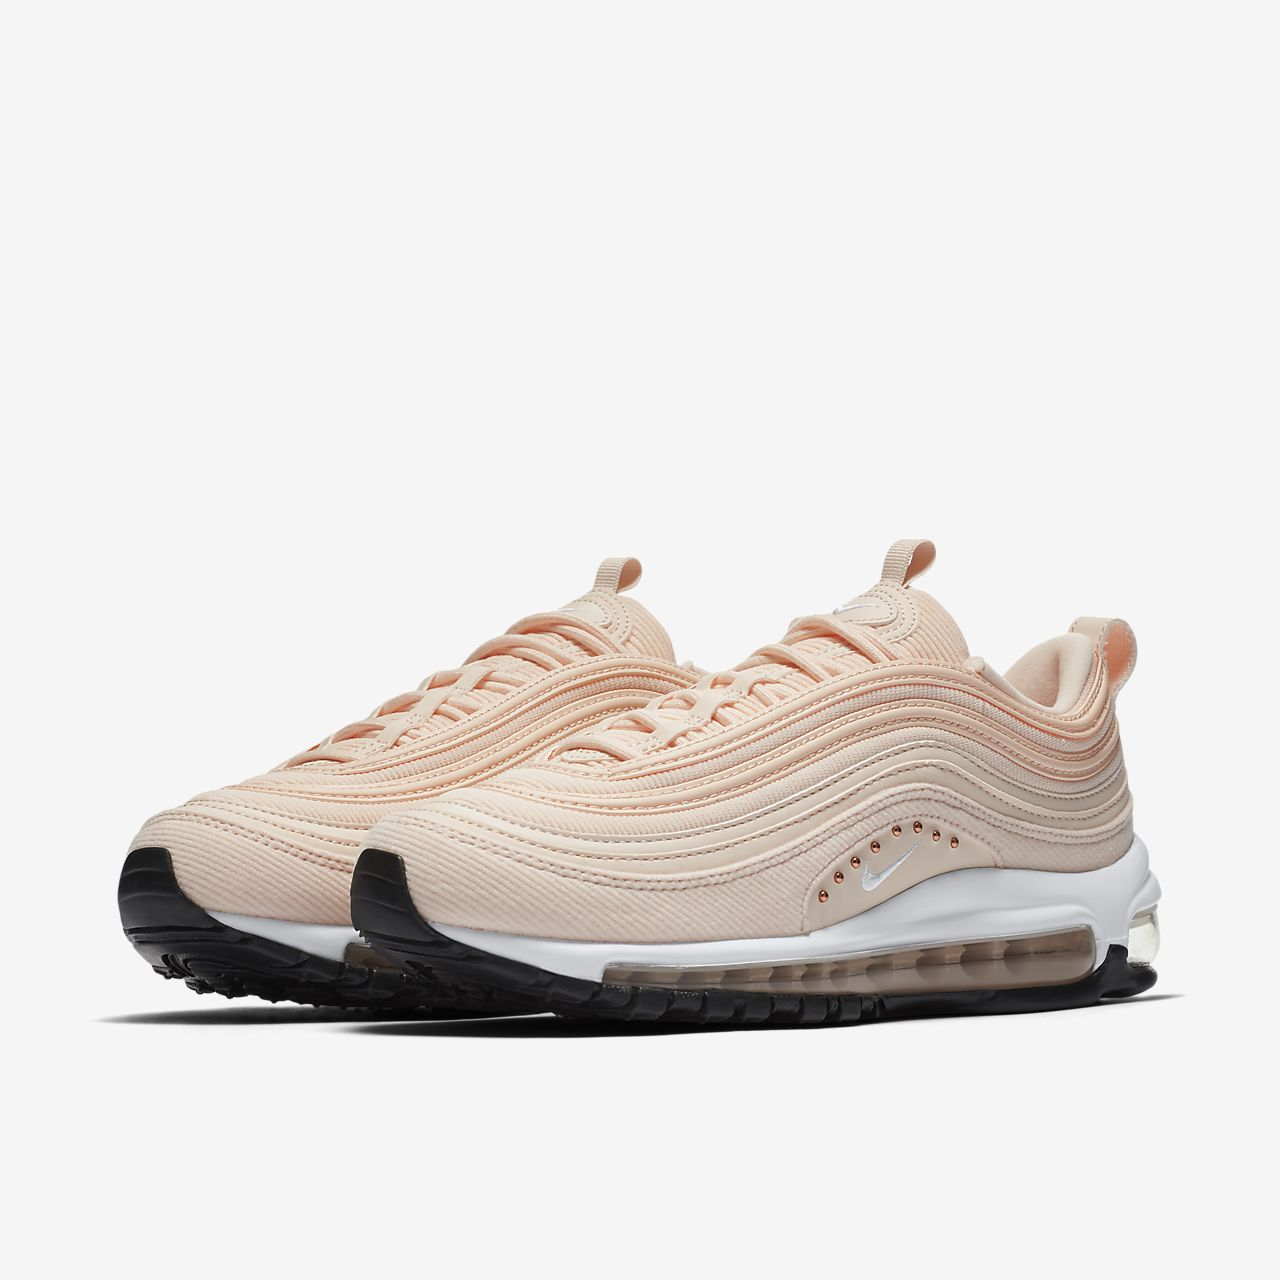 ea96e930e4 Nike Air Max 97 Womens : Up to 60% off - Buy Nike Shoes at ...